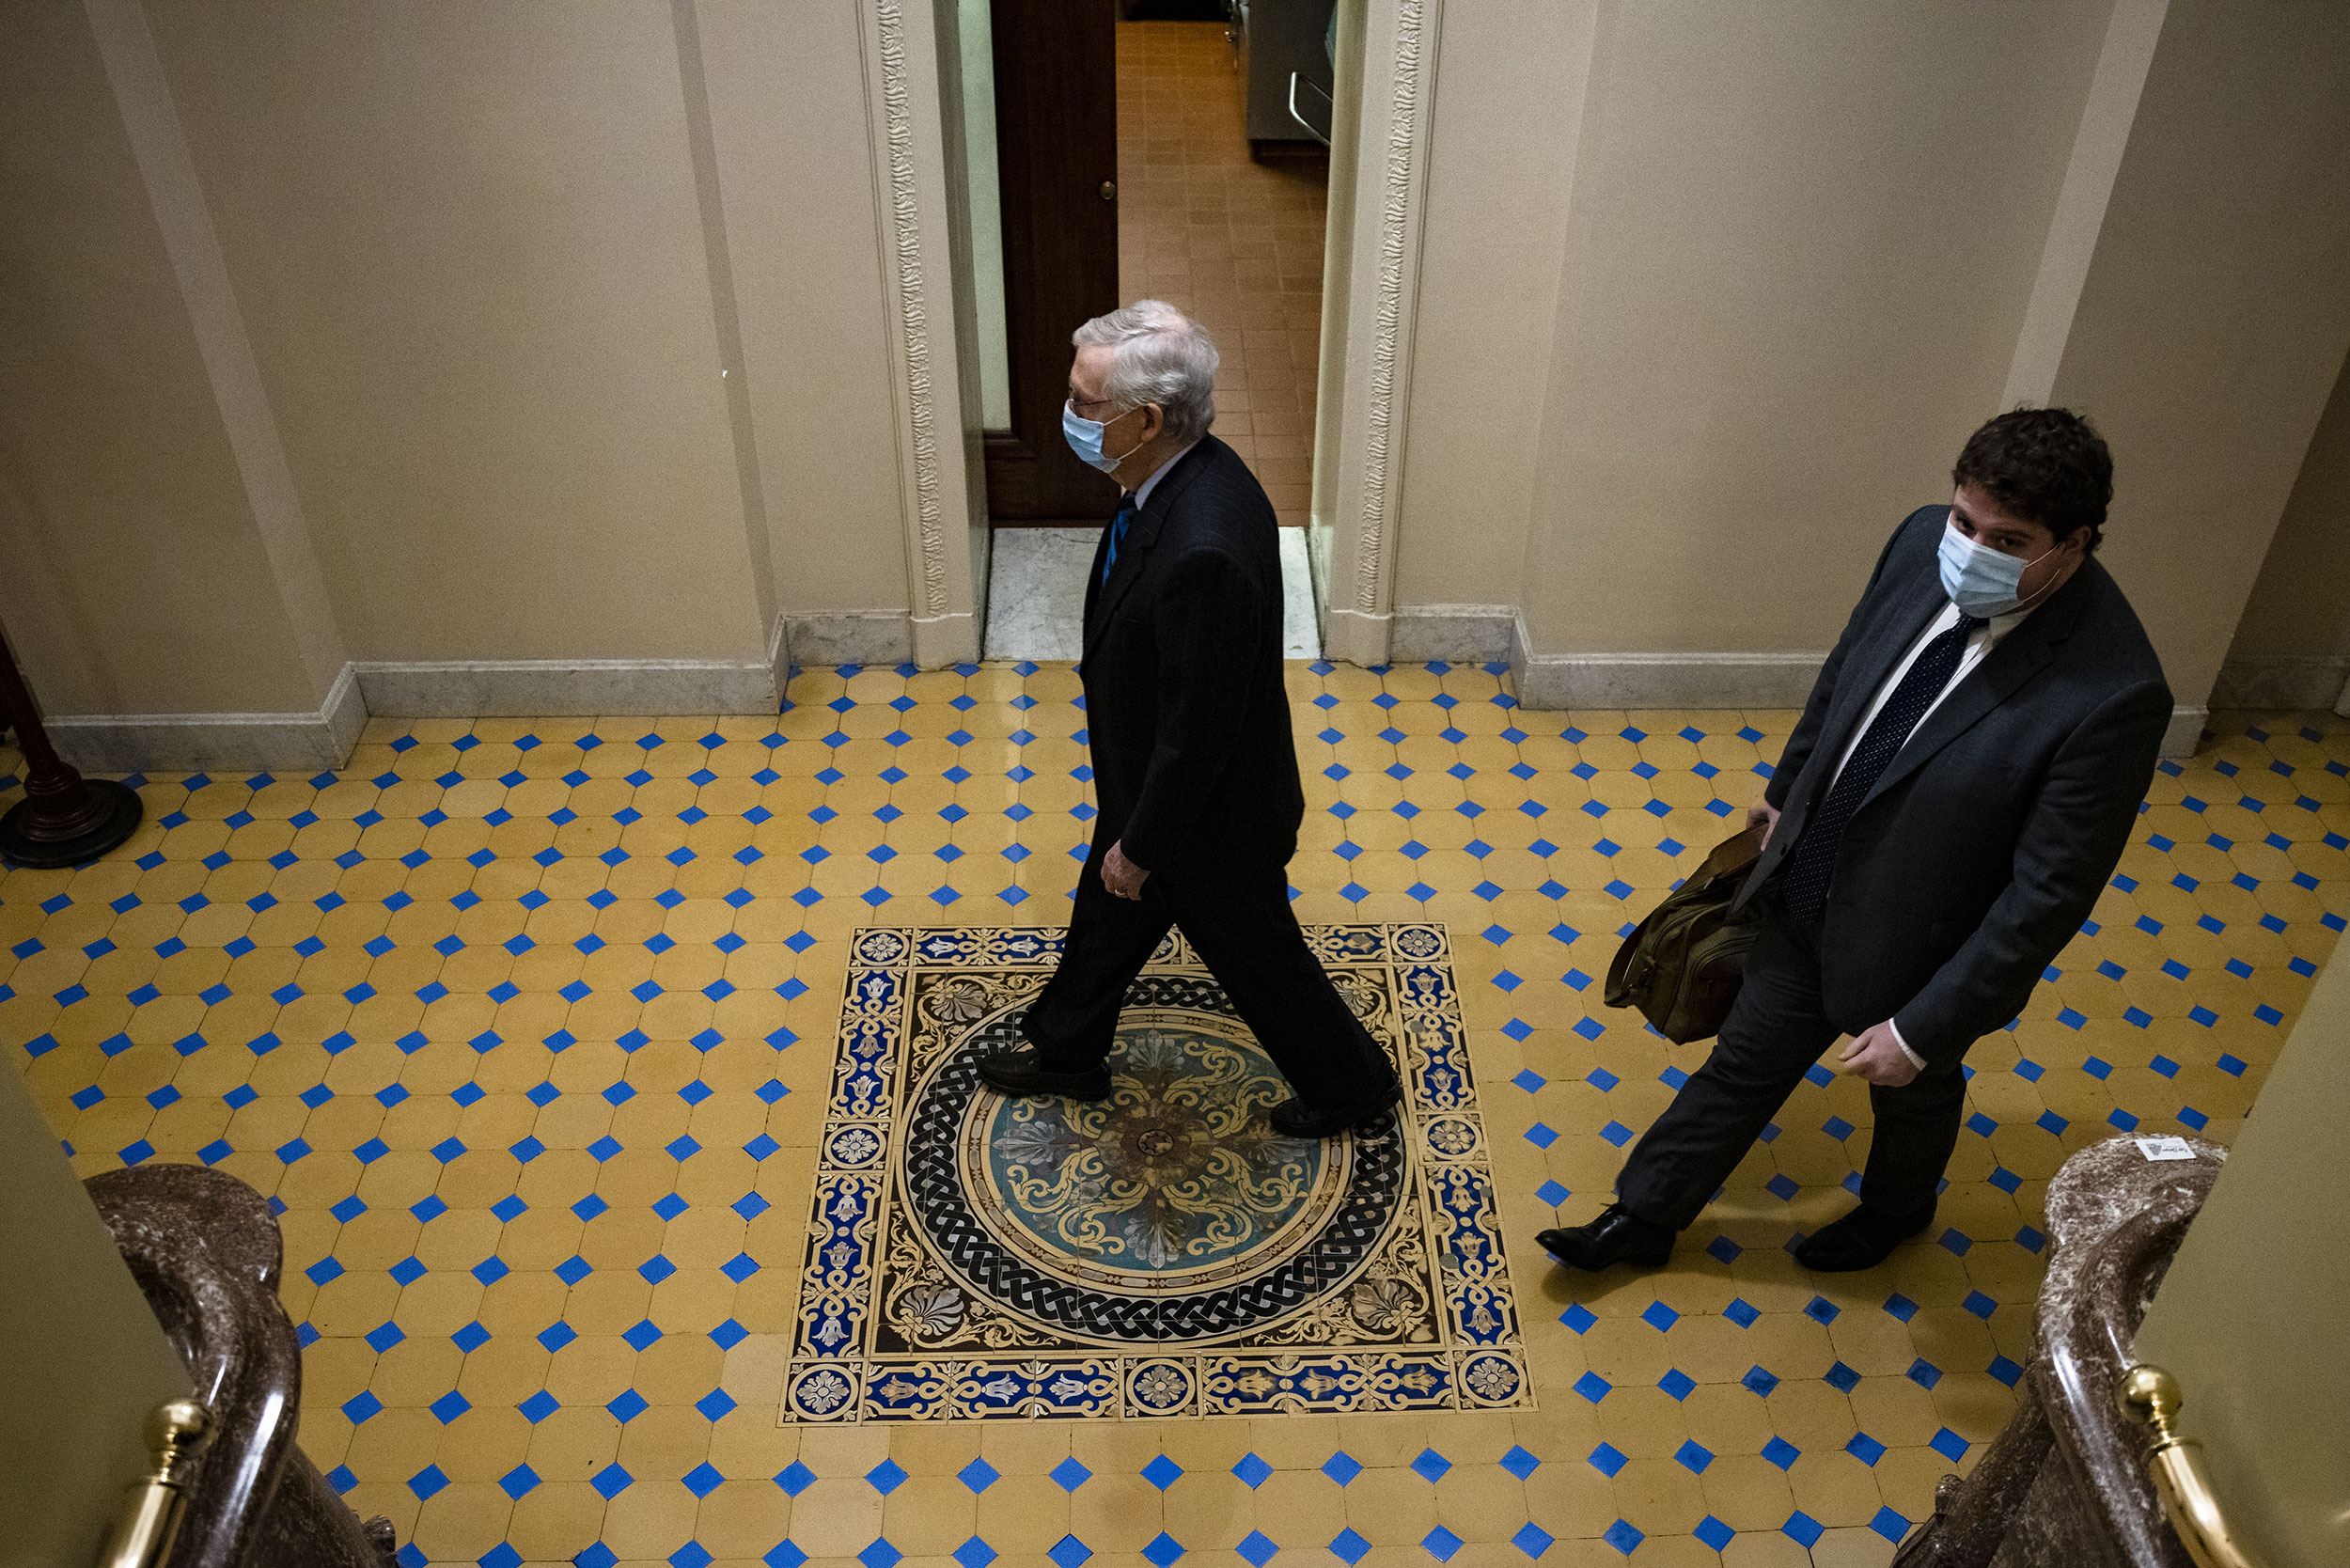 Senate Majority Leader Mitch McConnell arrives at the US Capitol on January 1.